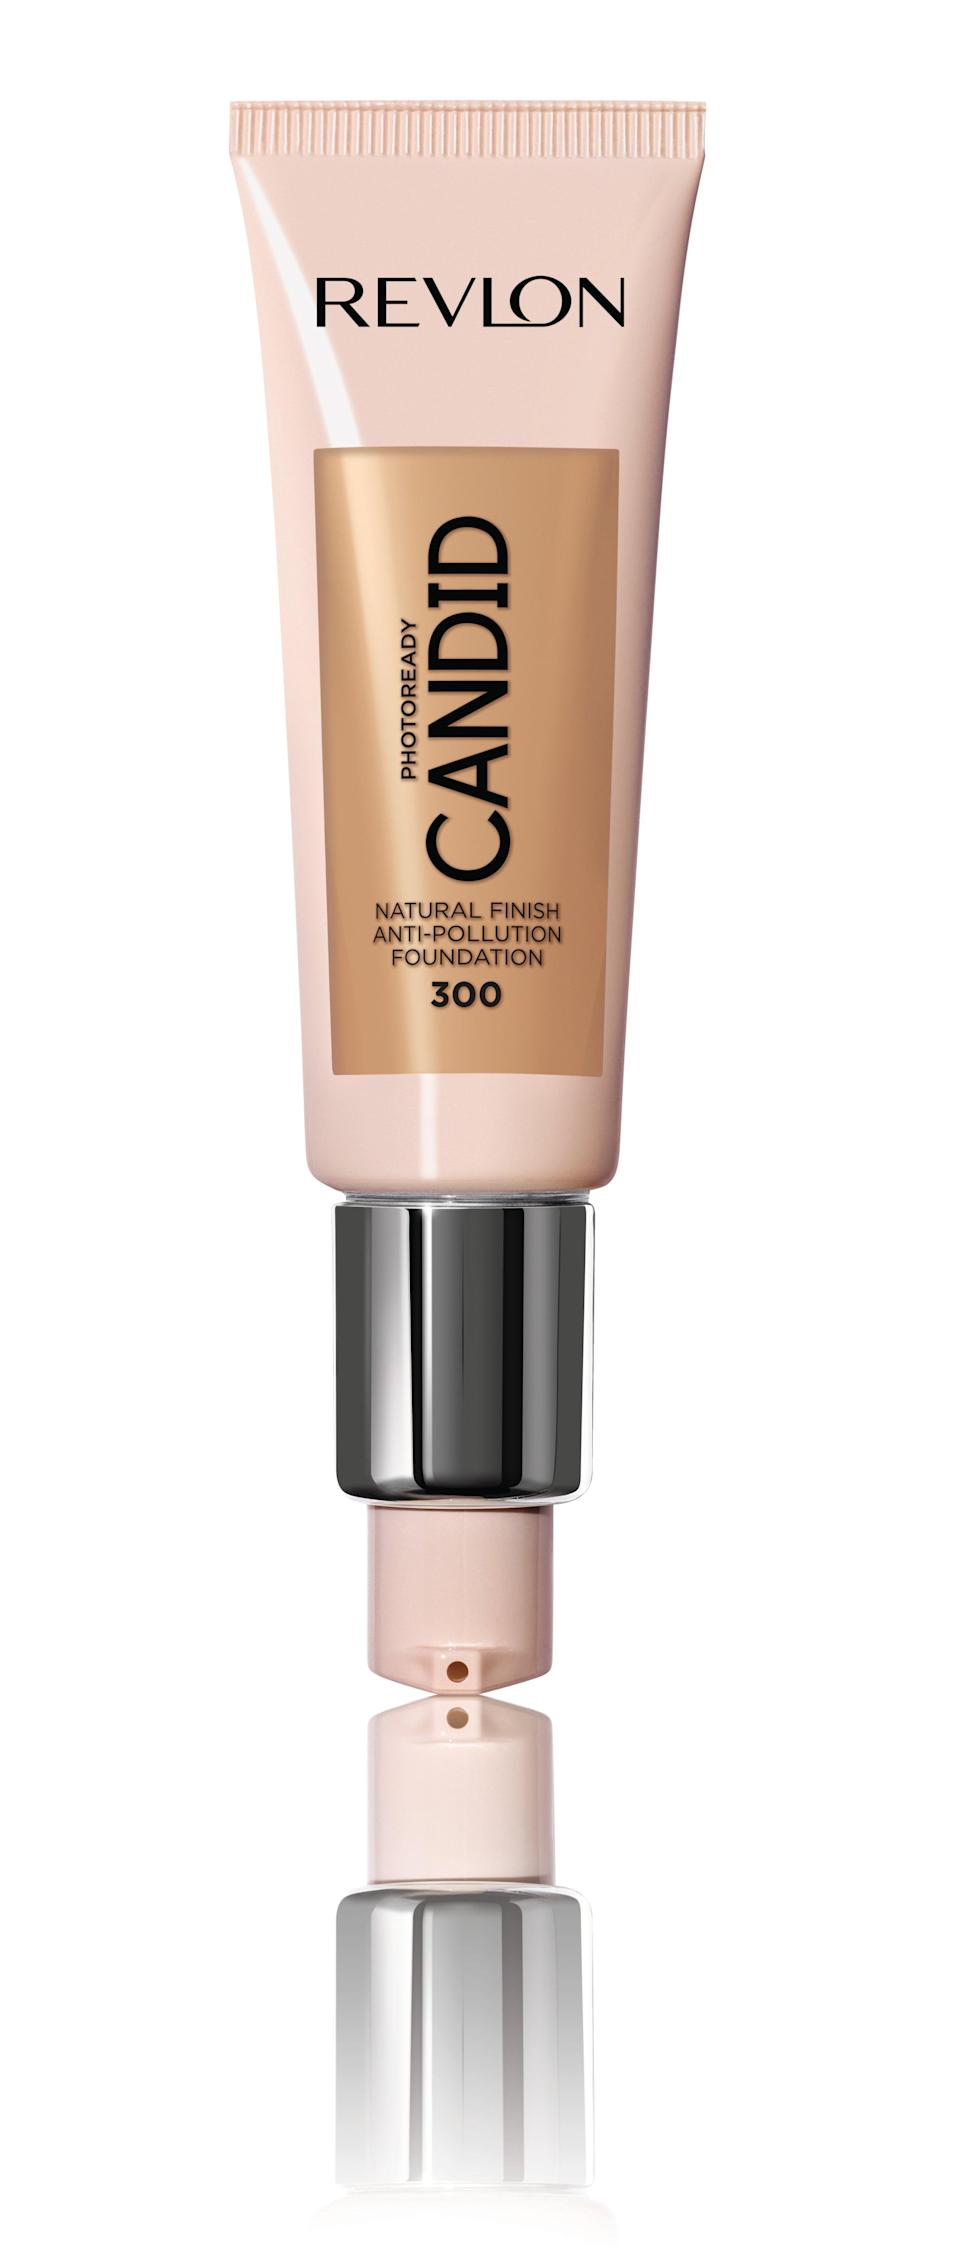 <p><span>Revlon PhotoReady Candid Natural Finish Anti-Pollution Foundation</span> ($4) completely covers up blemishes (with zero concealer necessary) but still manages to leave behind the subtlest, skin-like finish - because why not get you a foundation that can do both? It's also formulated with antioxidants to ward off environmental aggressors.</p>